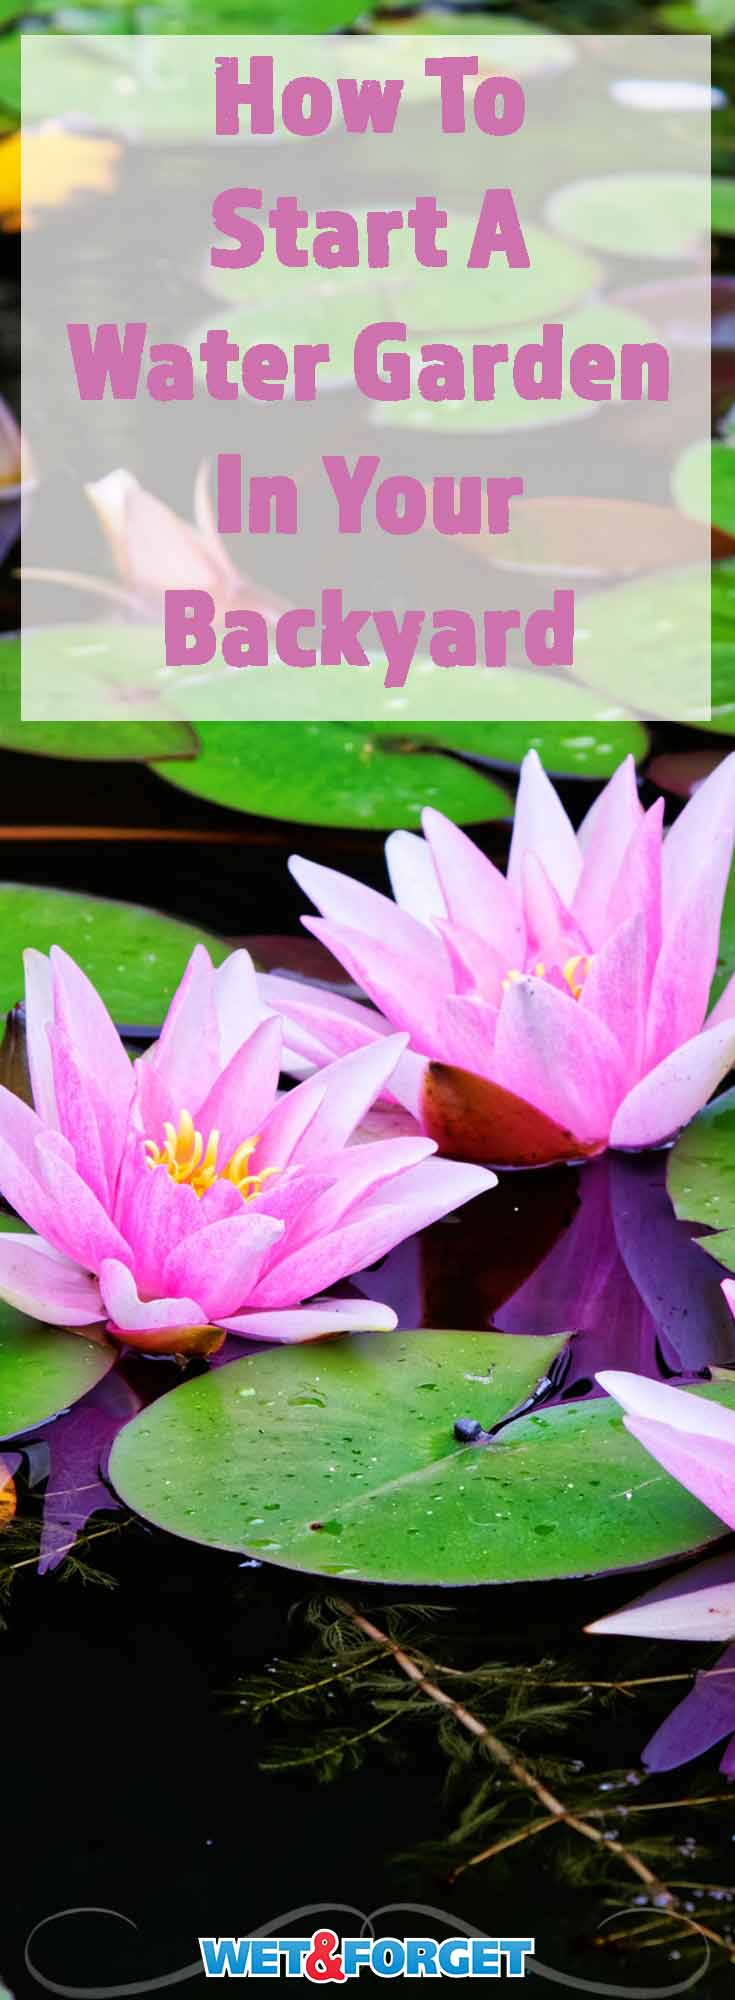 Water gardens can add so much beauty to your backyard. Learn how to start a water garden in your backyard with these 5 steps!